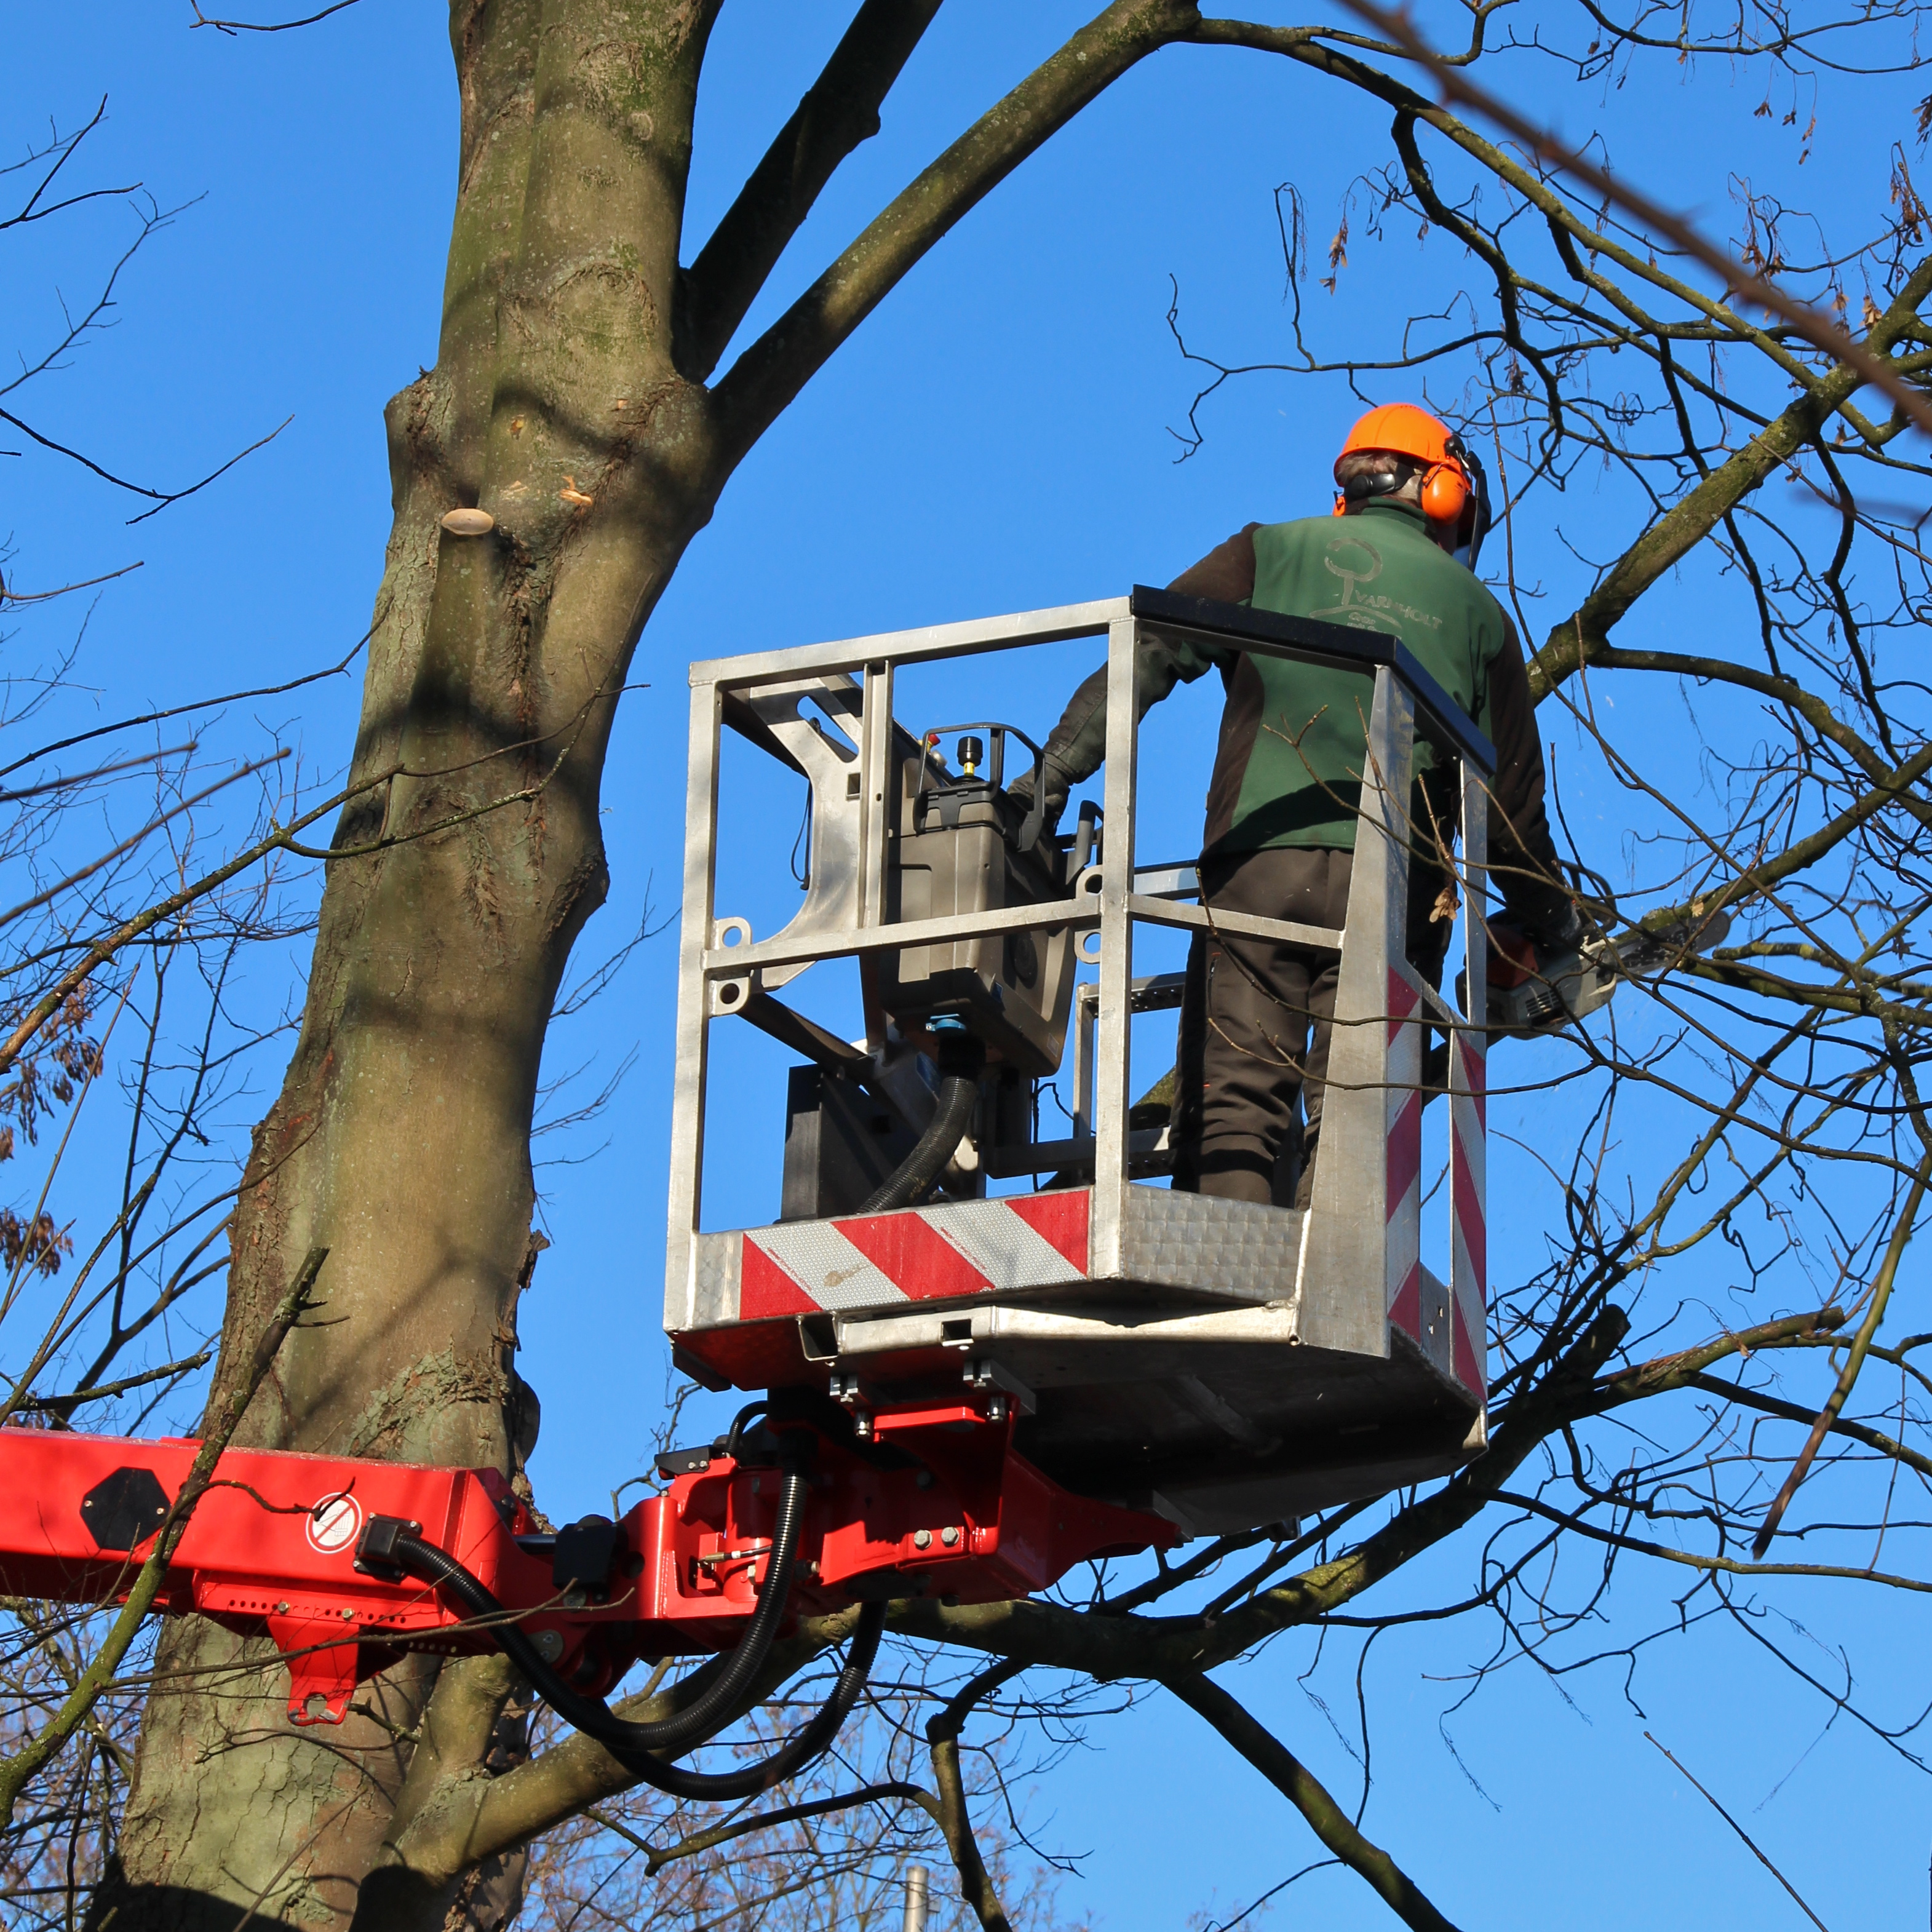 Pruning trees safely and easily from inside the work basket: the 185°swiveling jib - RÜSSEL ® - on the T 360 makes it all possible. The special tree-cutting basket – only 1.05 m wide – is available for all models in the T STEIGER ® series. It is especially advantageous when navigating amongst branches. Without constantly having to reposition the truck mount, Varnholt employees were able to maneuver around the tree and prune all of the necessary branches. The ultra-modern control panel in the work basket - Cockpit -, further enhances the level of safety and facilitates ergonomic, fatigue-free handling. Image source: Varnholt, Gütersloh